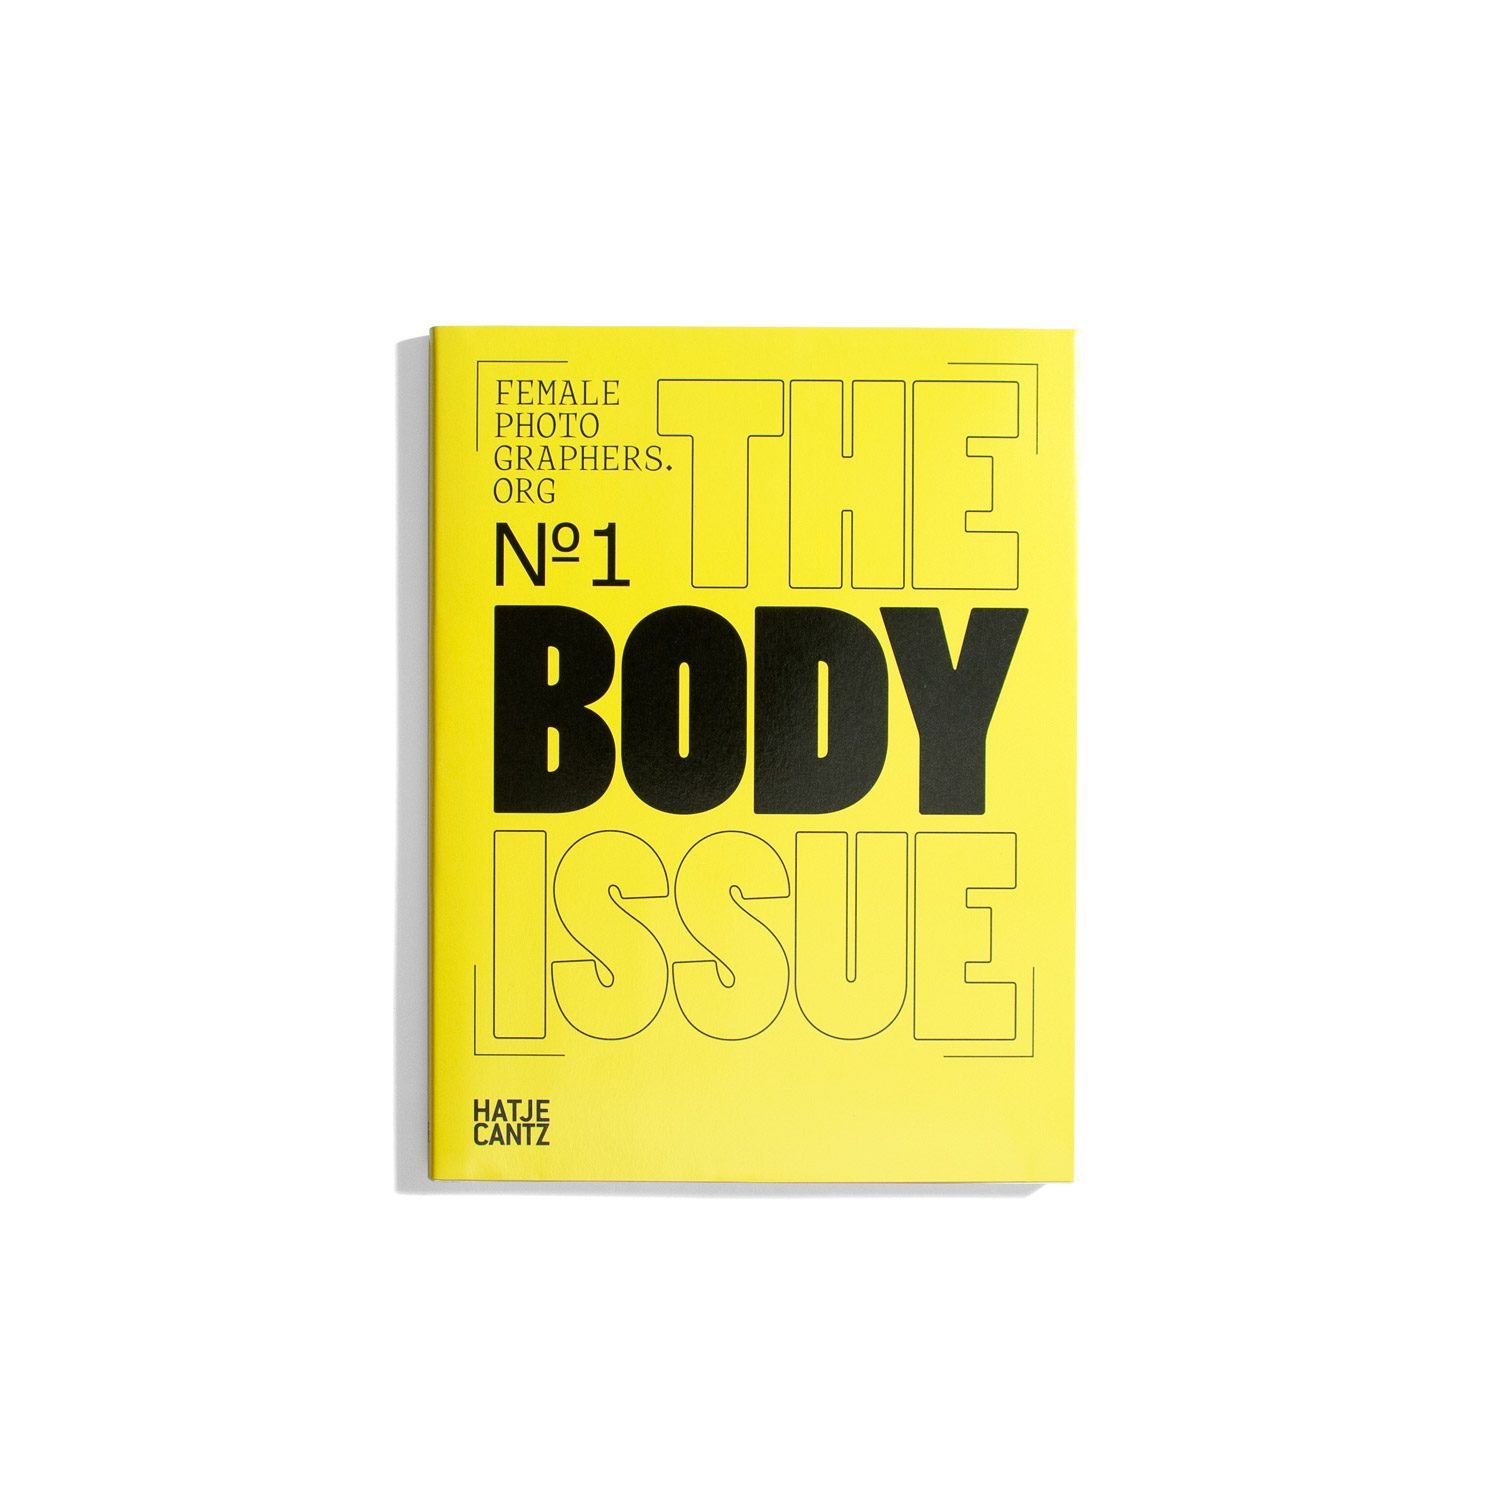 femalephotographers.org #1 - The Body Issue